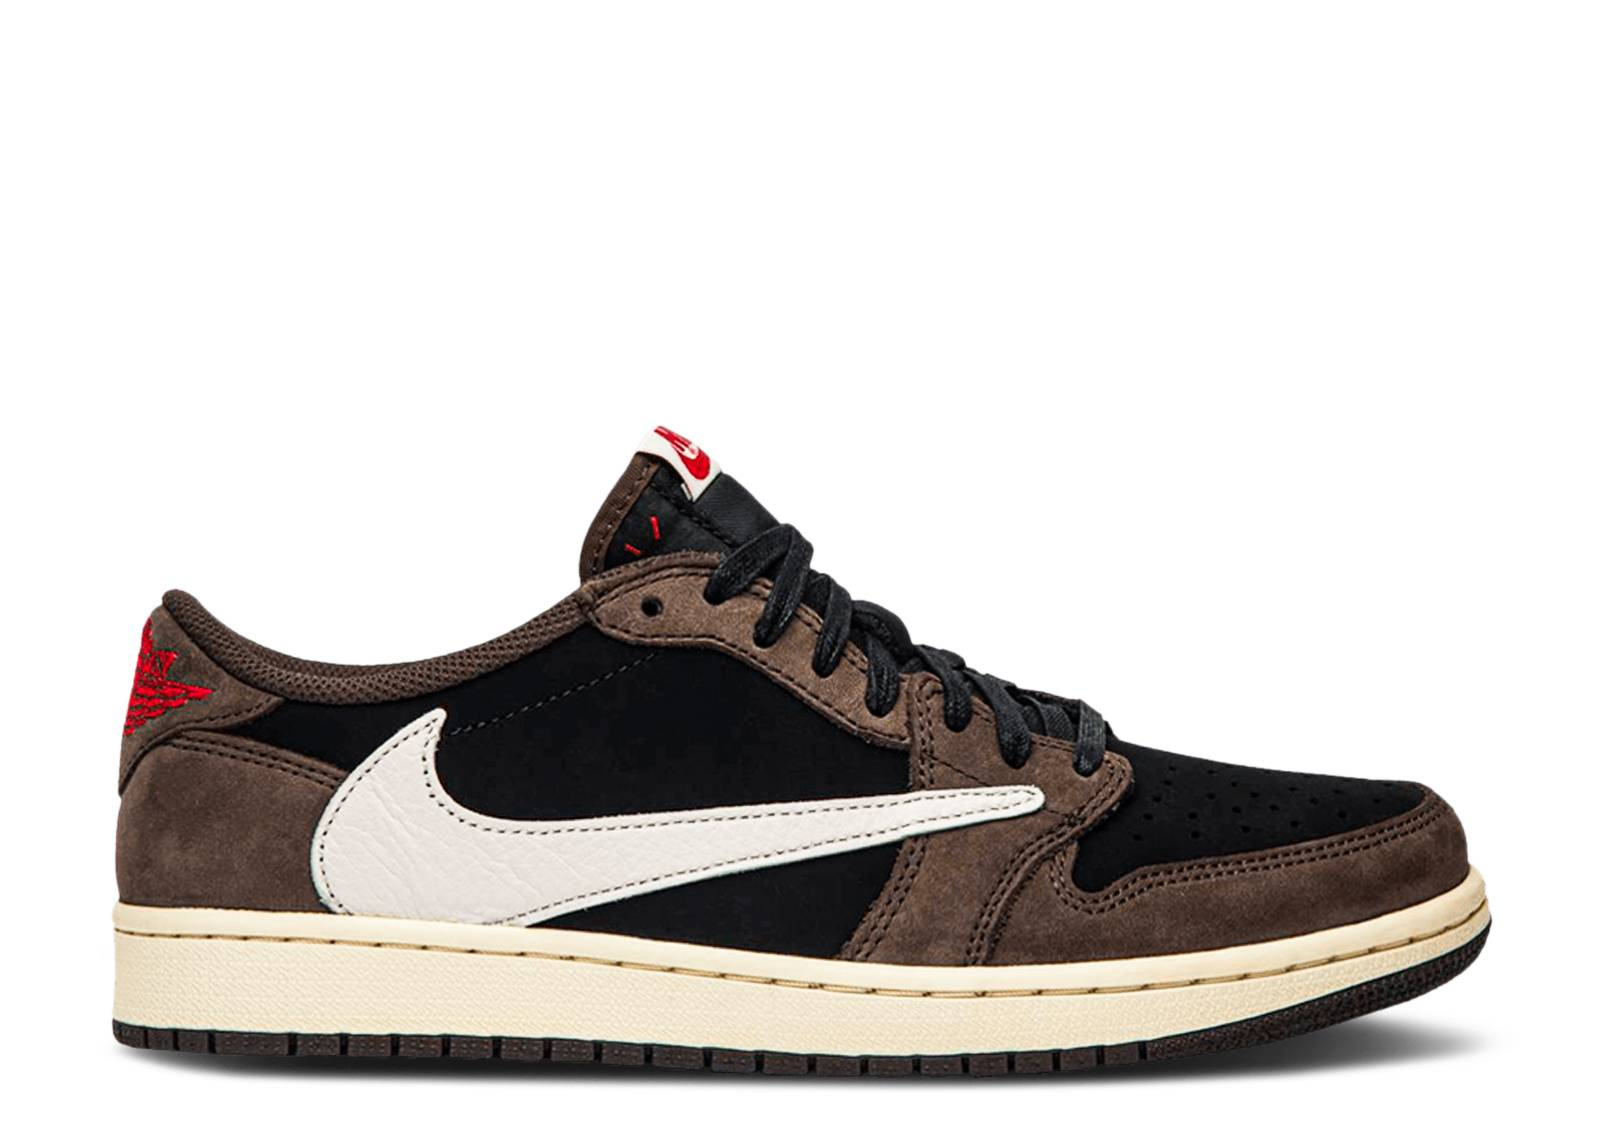 TRAVIS SCOTT X AIR JORDAN 1 LOW 'MOCHA' SAMPLE